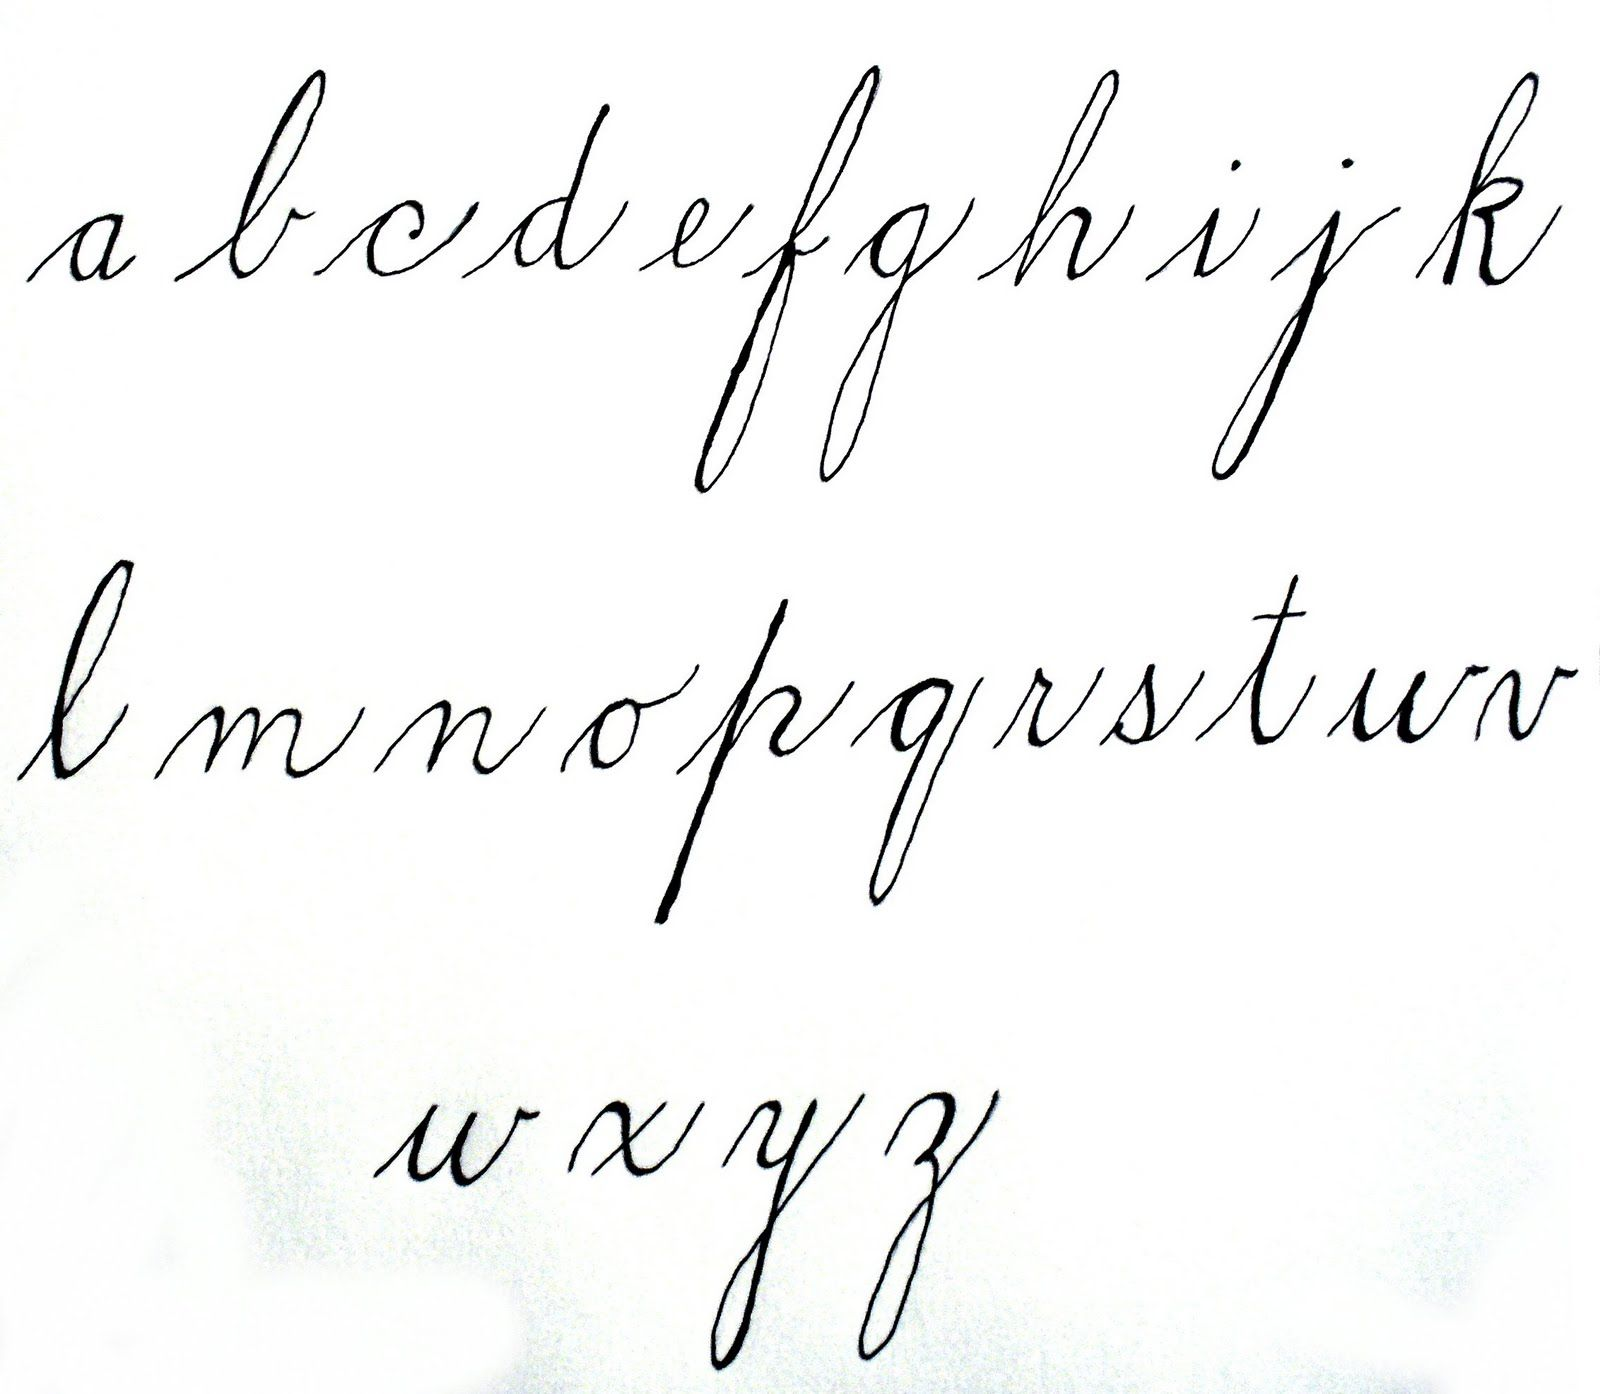 Letter In Cursive Penmanship In The 1800s Google Search Calligraphy Penmanship